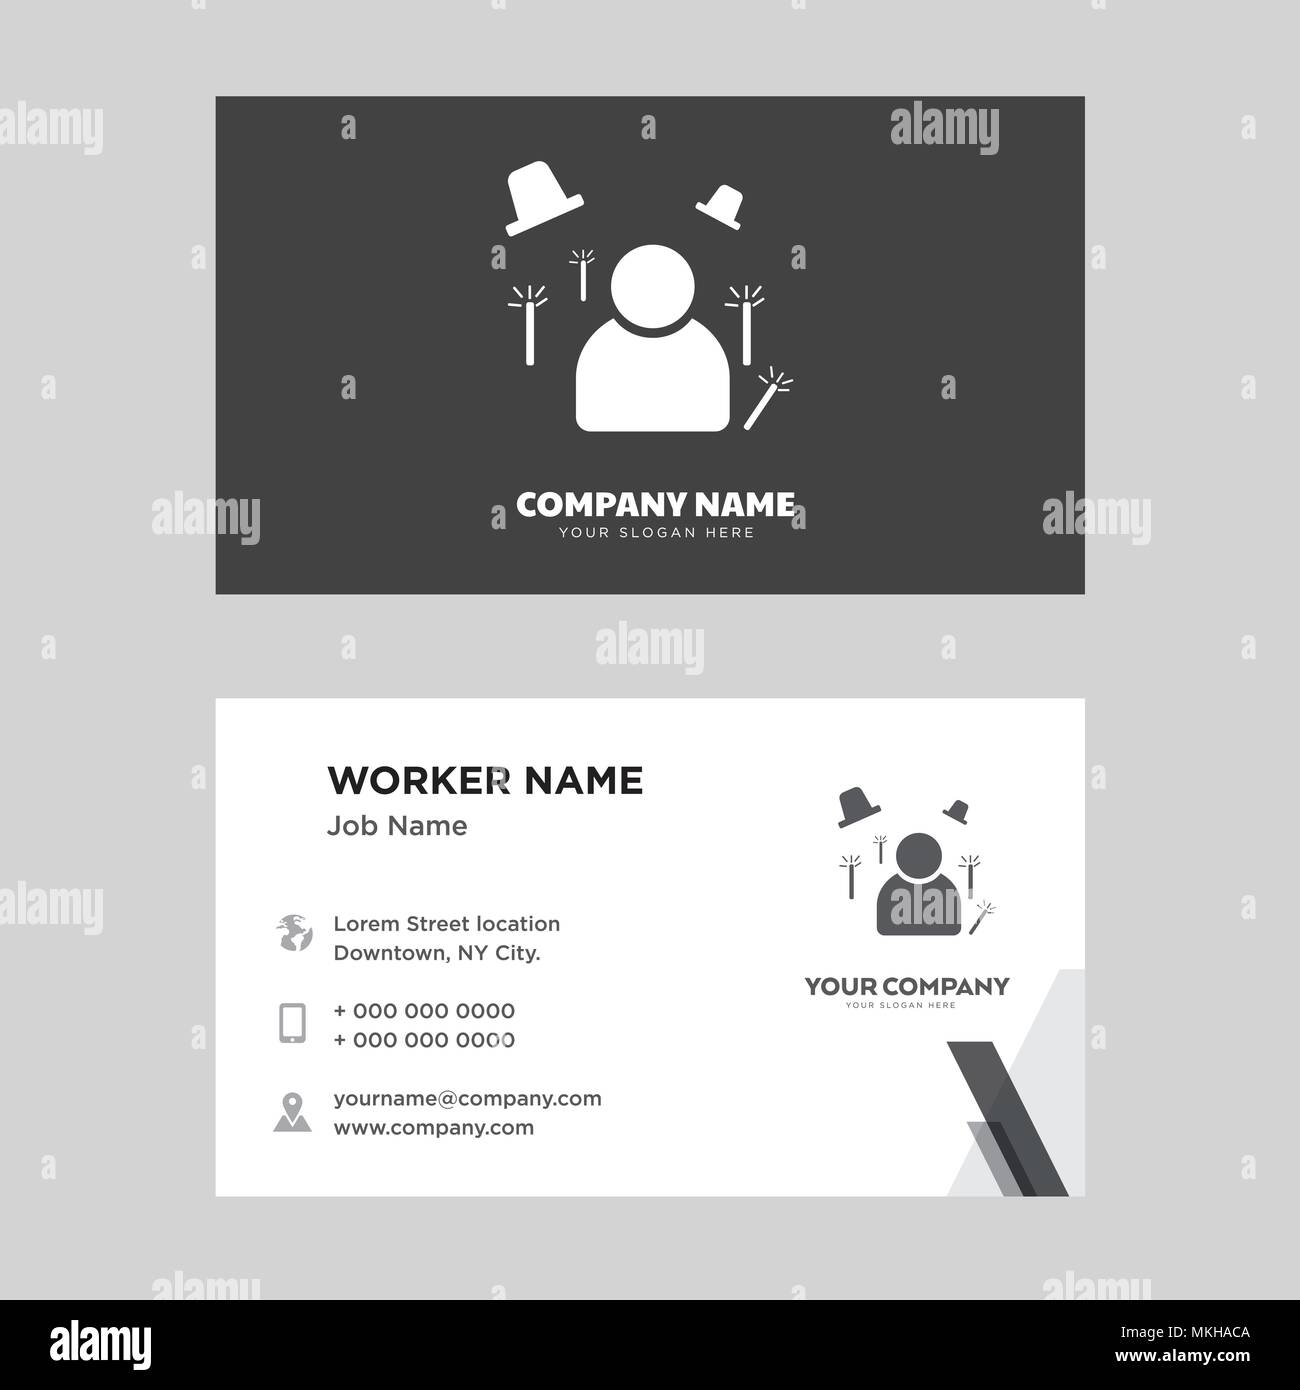 Magician business card design template, Visiting for your company ...